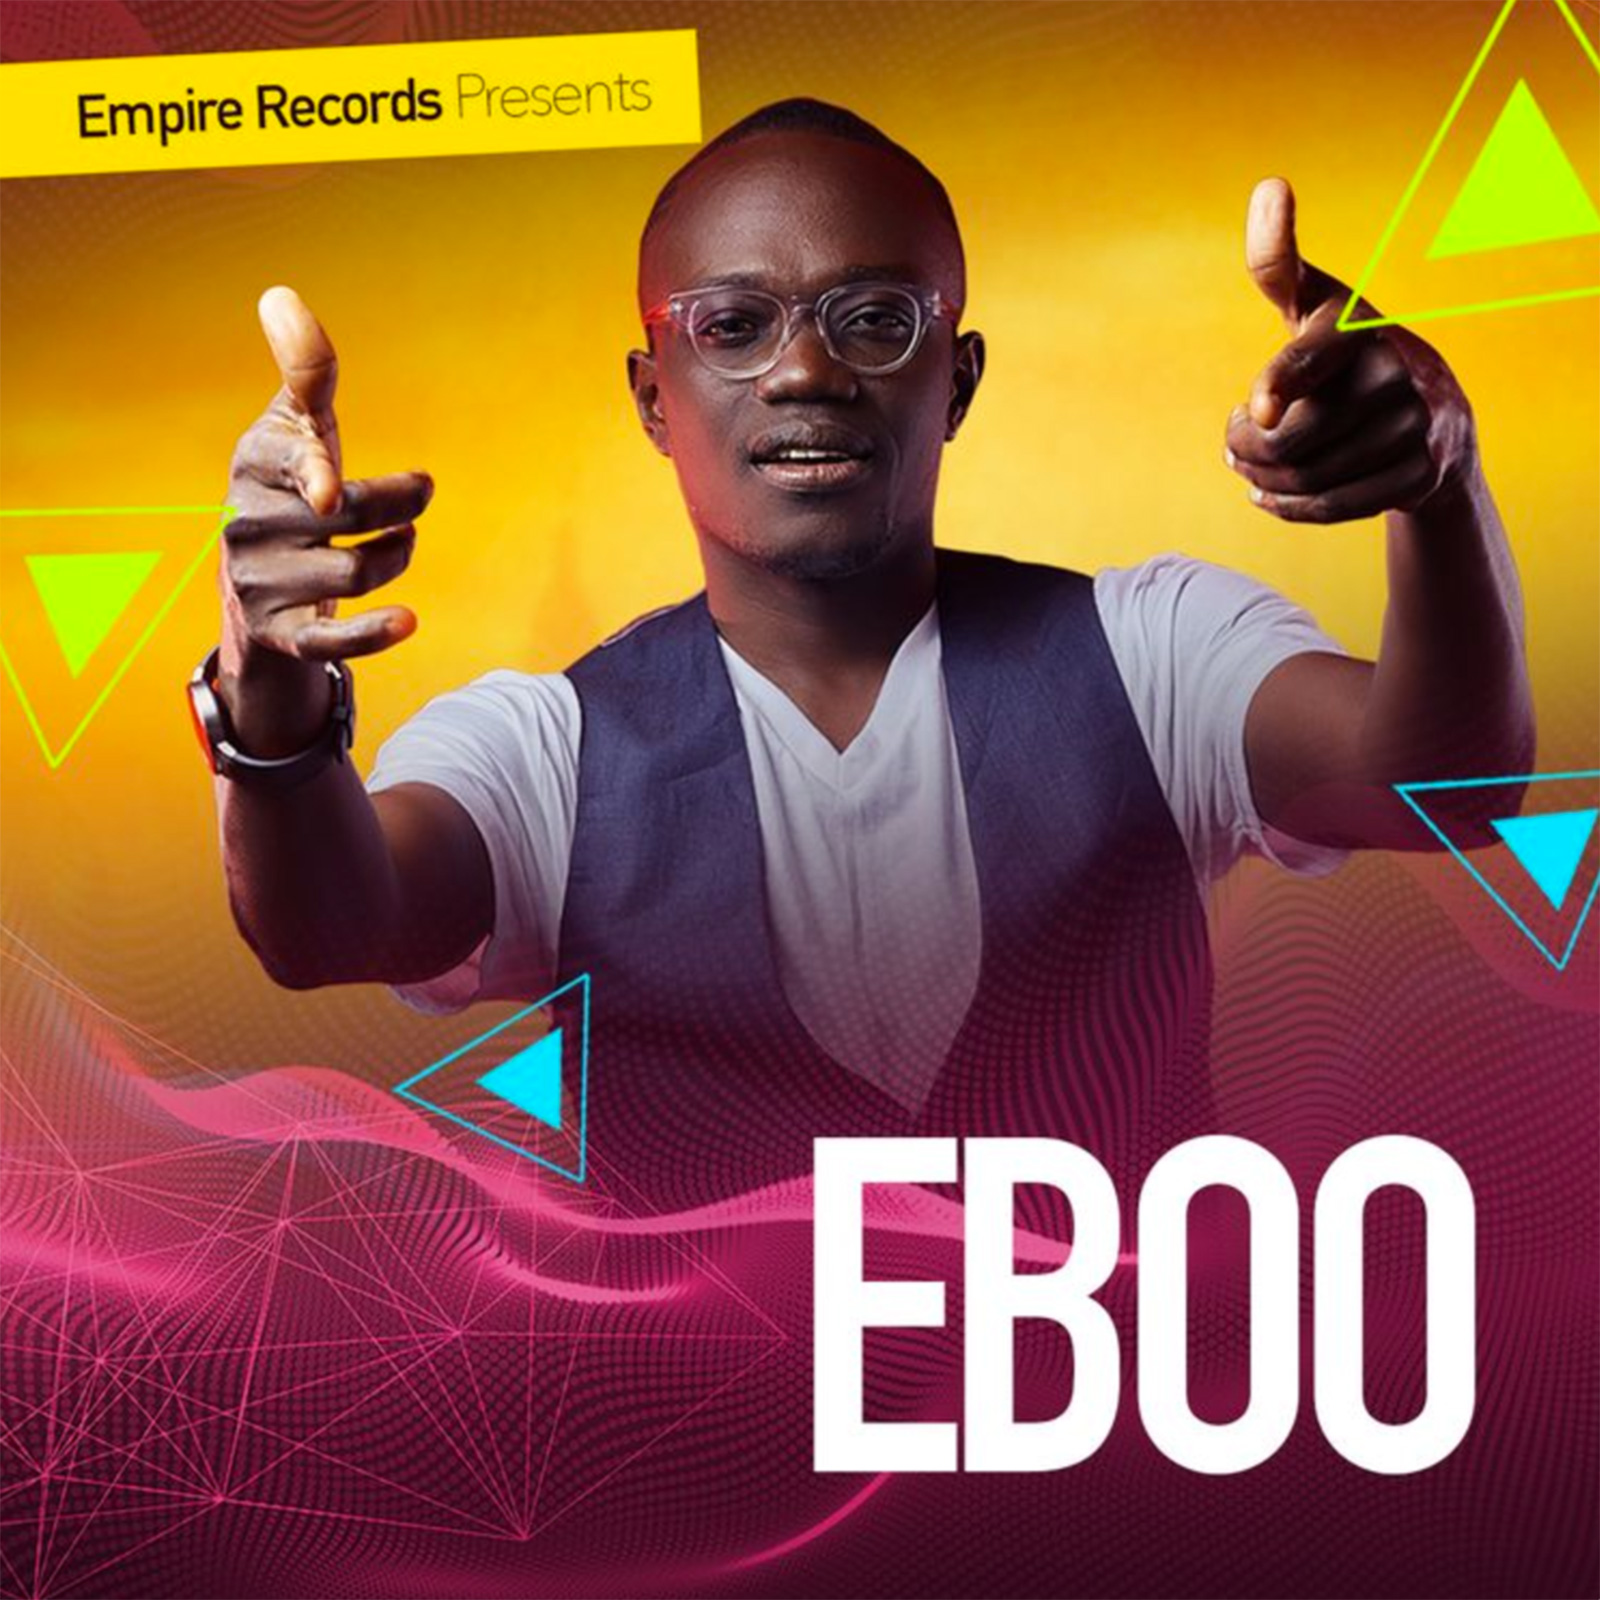 Nonstop by Eboo feat. Bouy Lyrical